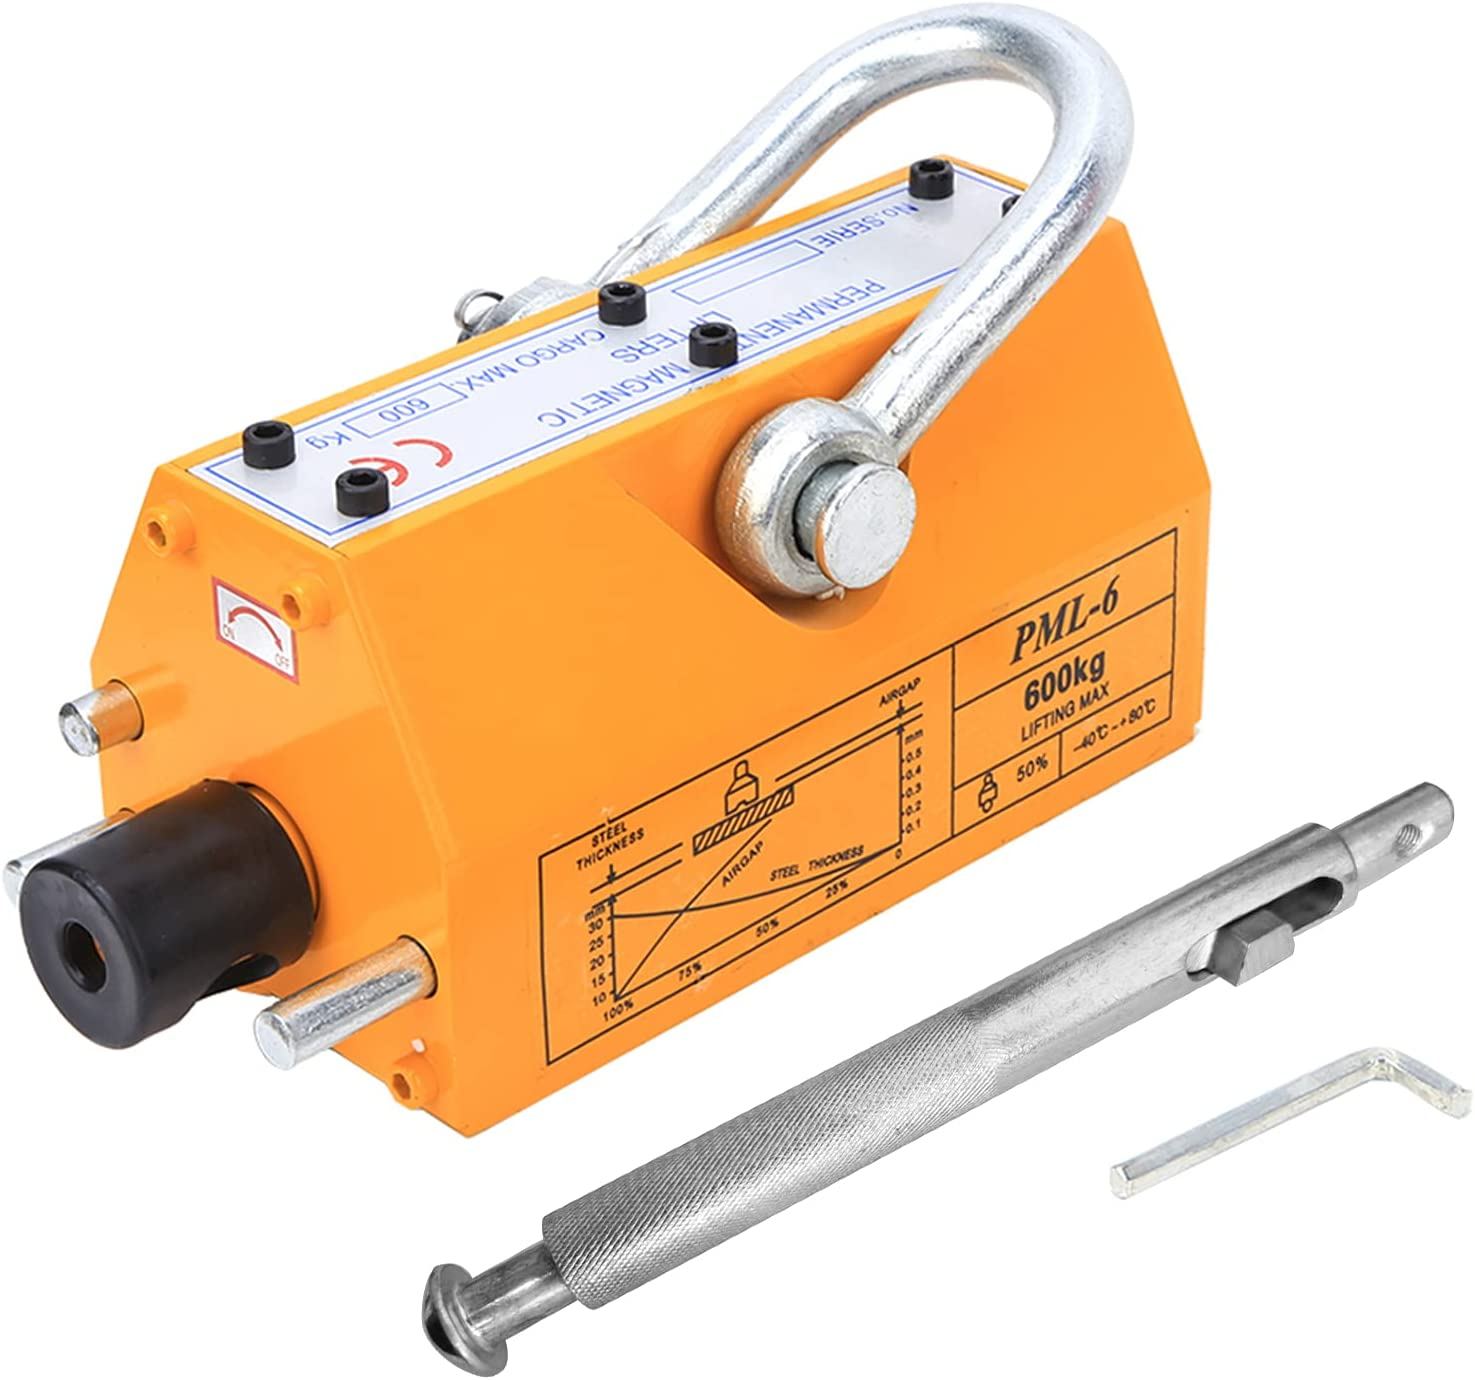 Hoist Lifting Magnet, Easy to Operate 600KG Steel Magnetic Lifte